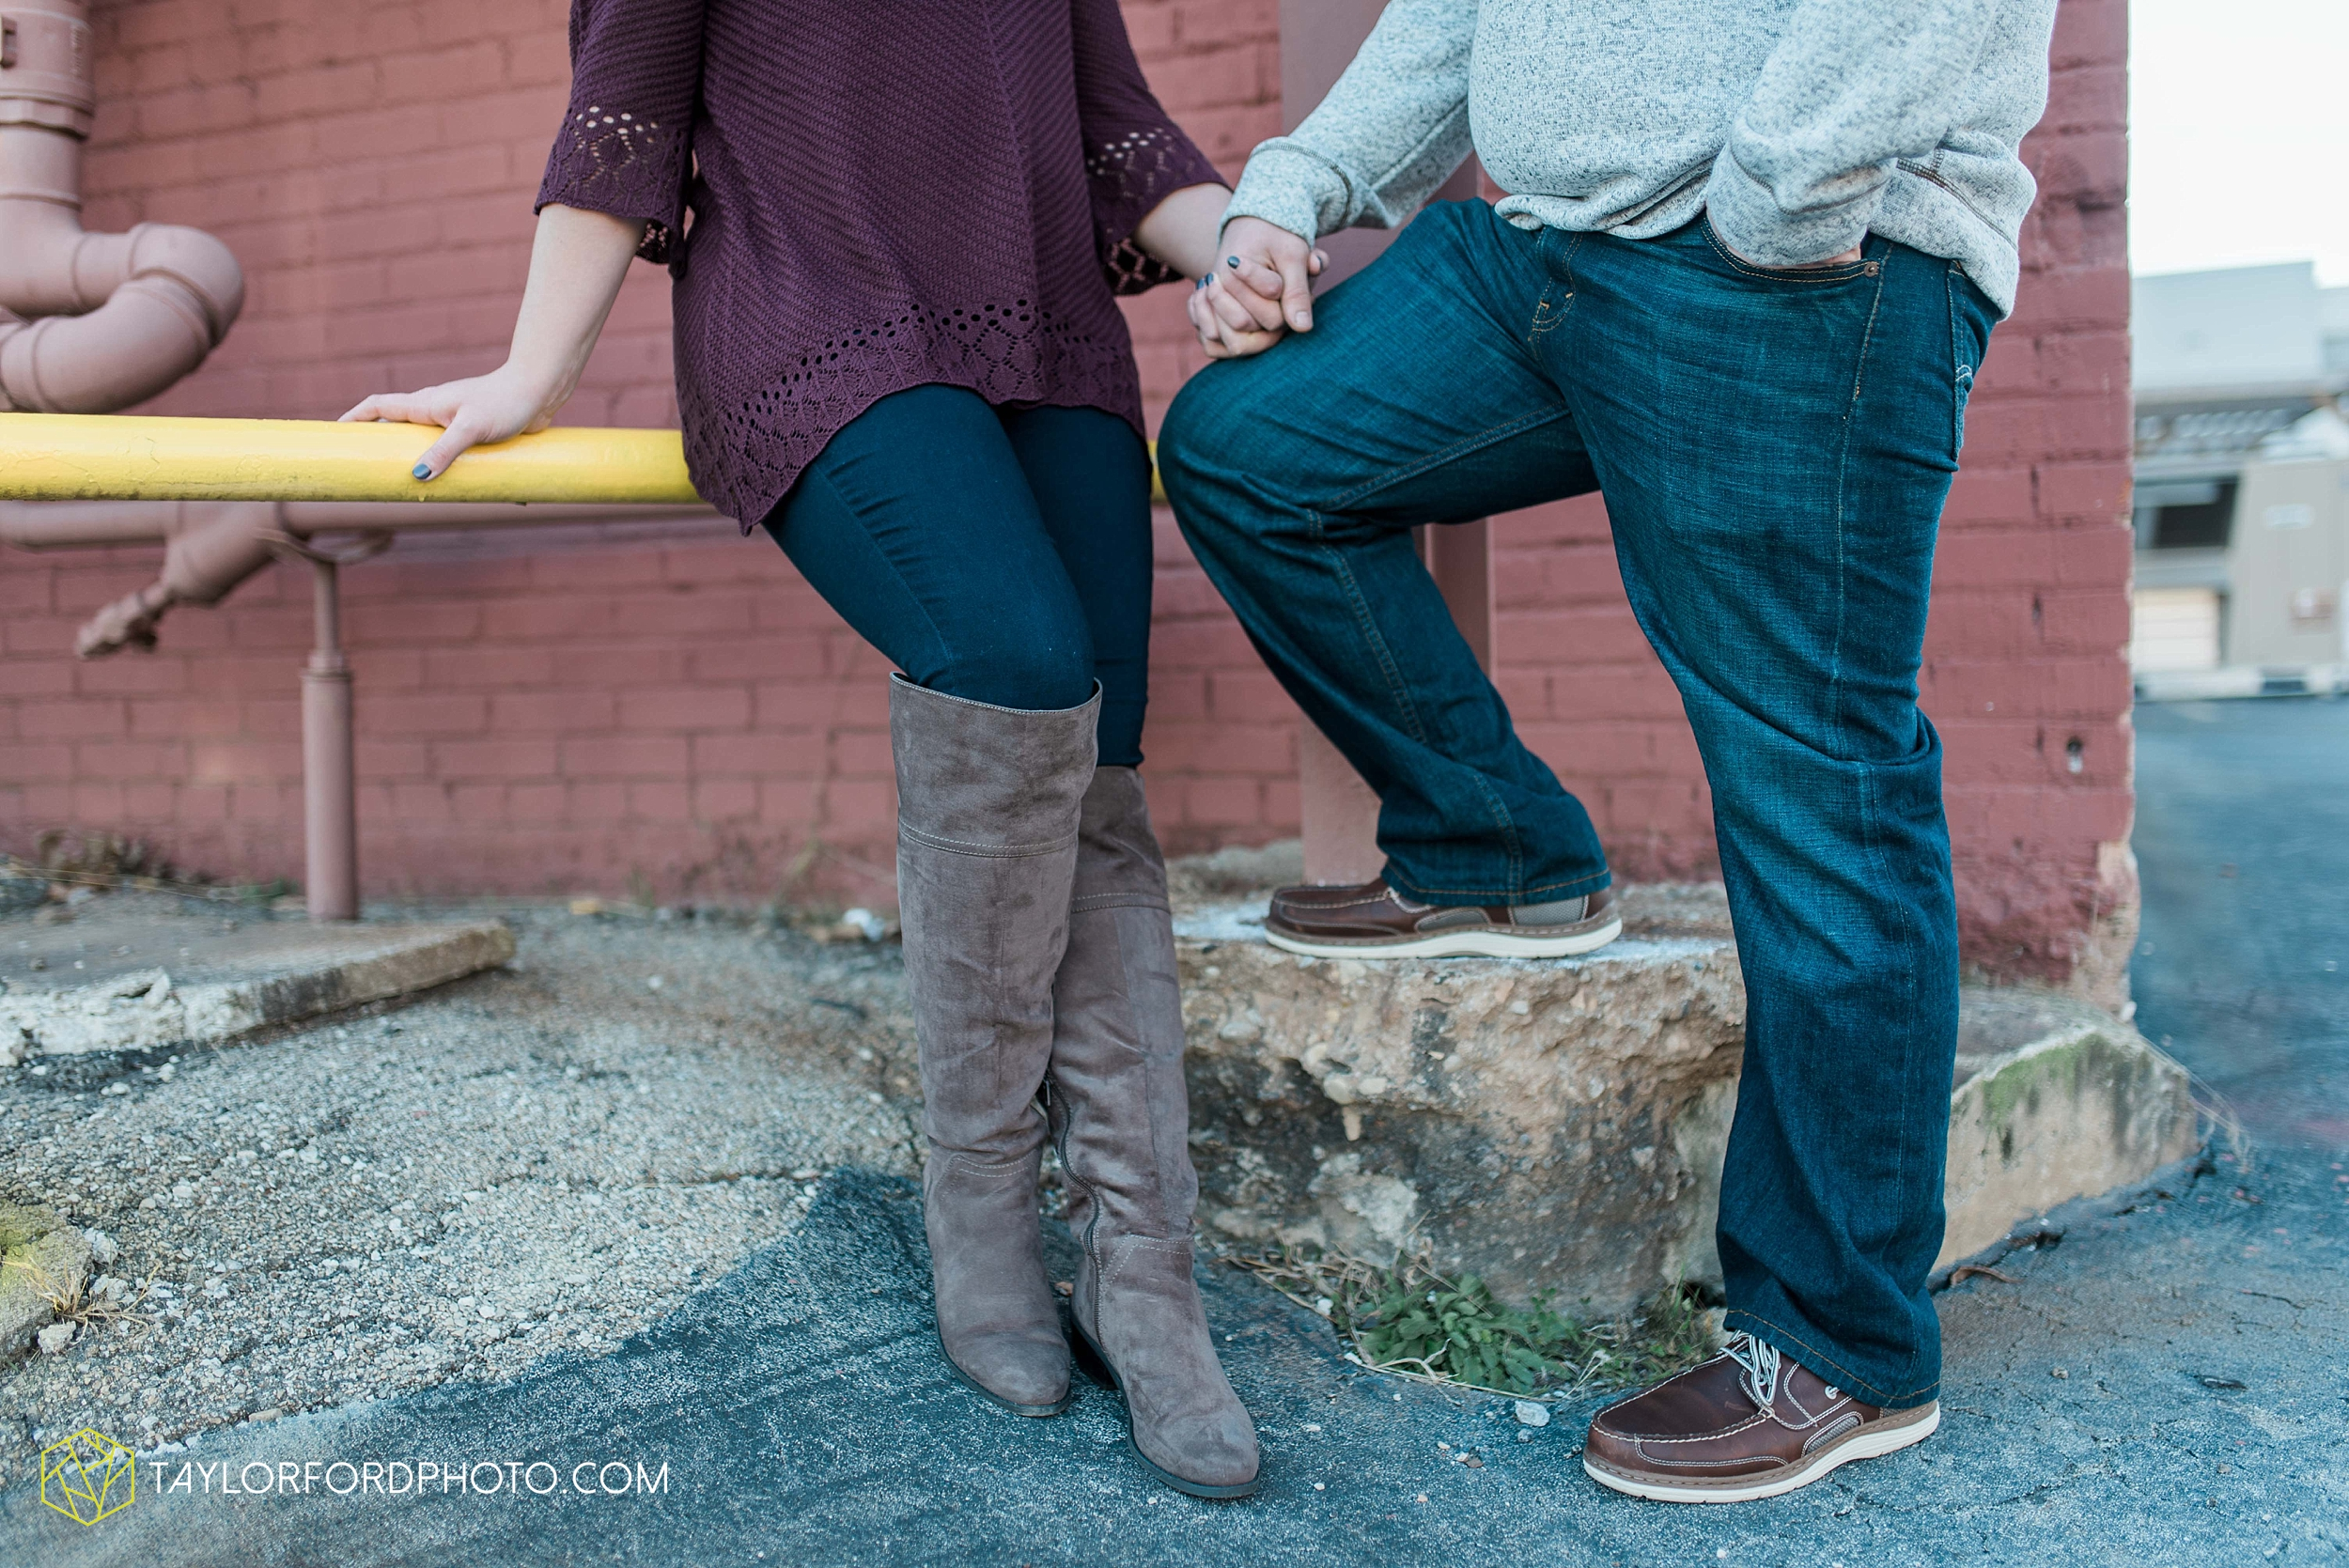 fort-wayne-new-haven-indiana-engagement-photographer-Taylor-Ford-Photography_5234.jpg